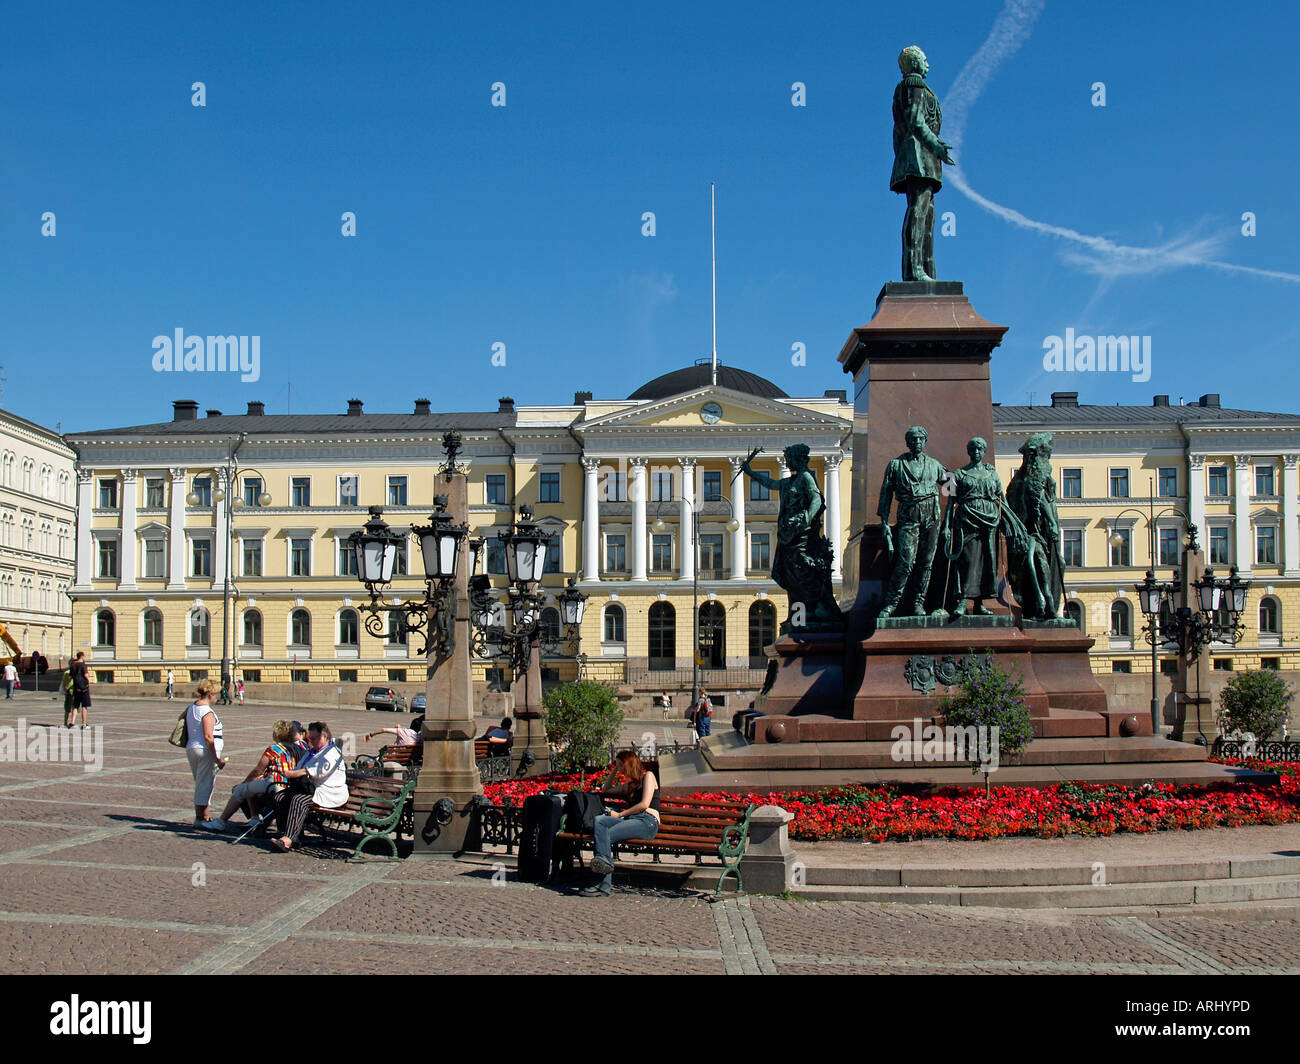 Zar Alexander II senate place in Helsinki with a statue of Tsar Alexander the second - Stock Image